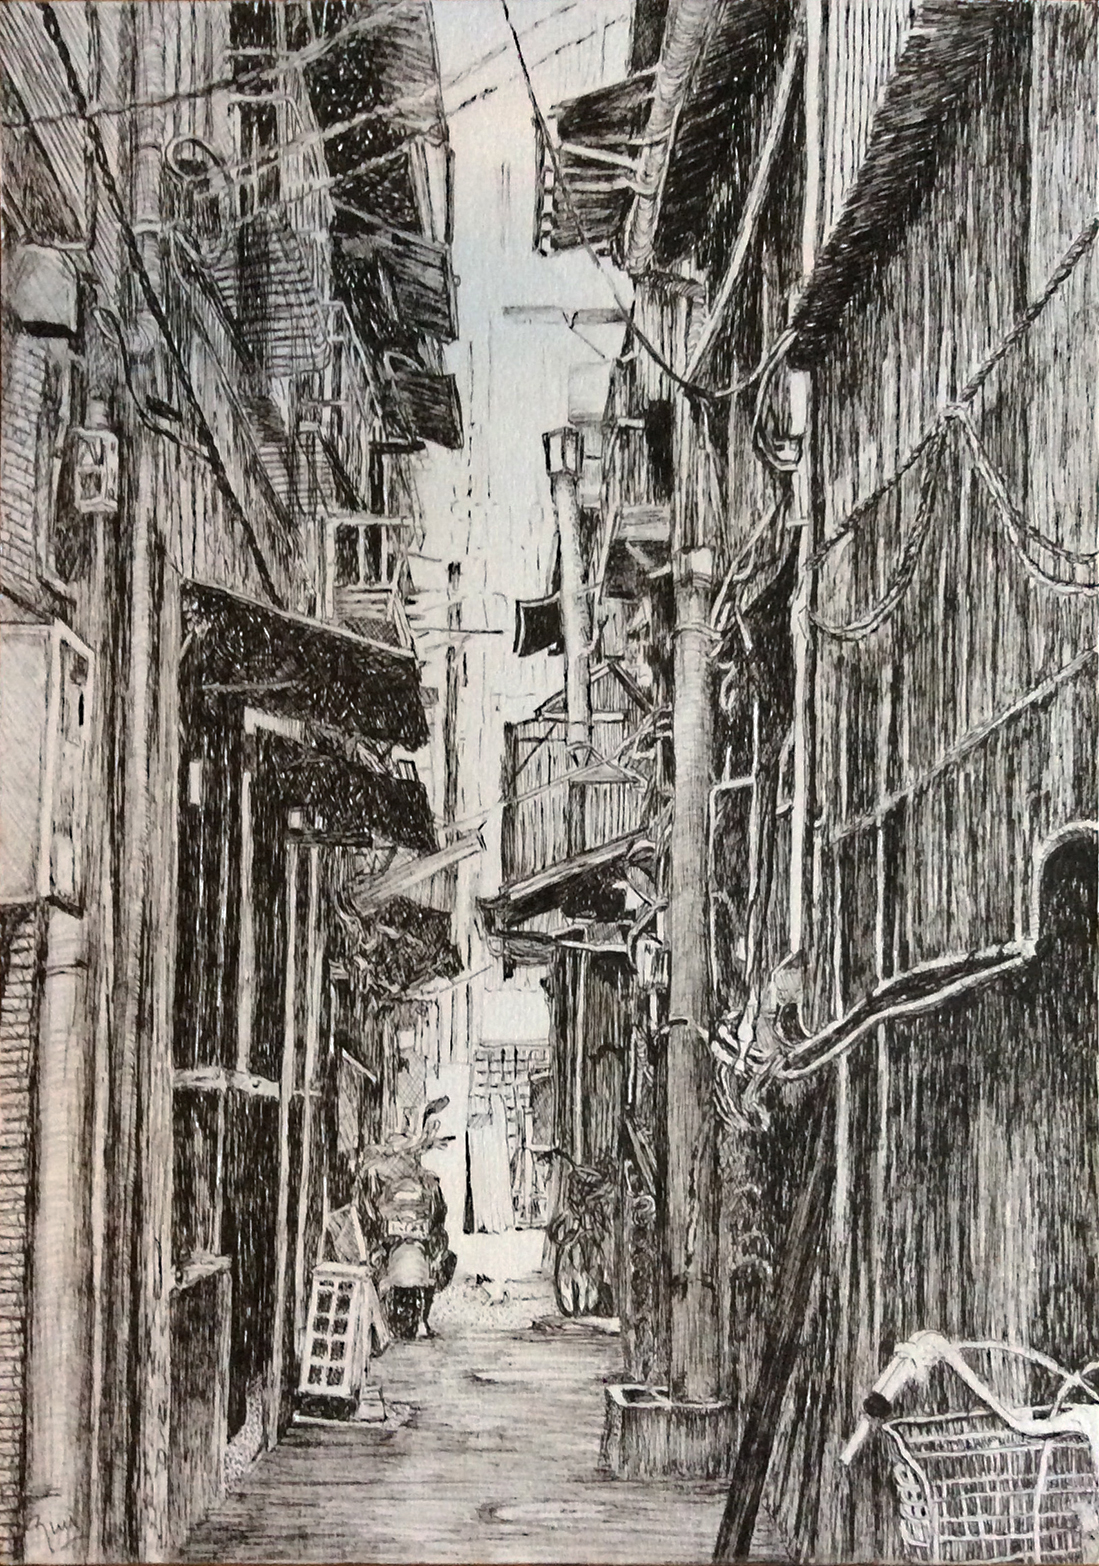 pen and ink drawing, looking down a narrow alleyway with a parked motorbike and two bicycles and a small white cat with black ears.